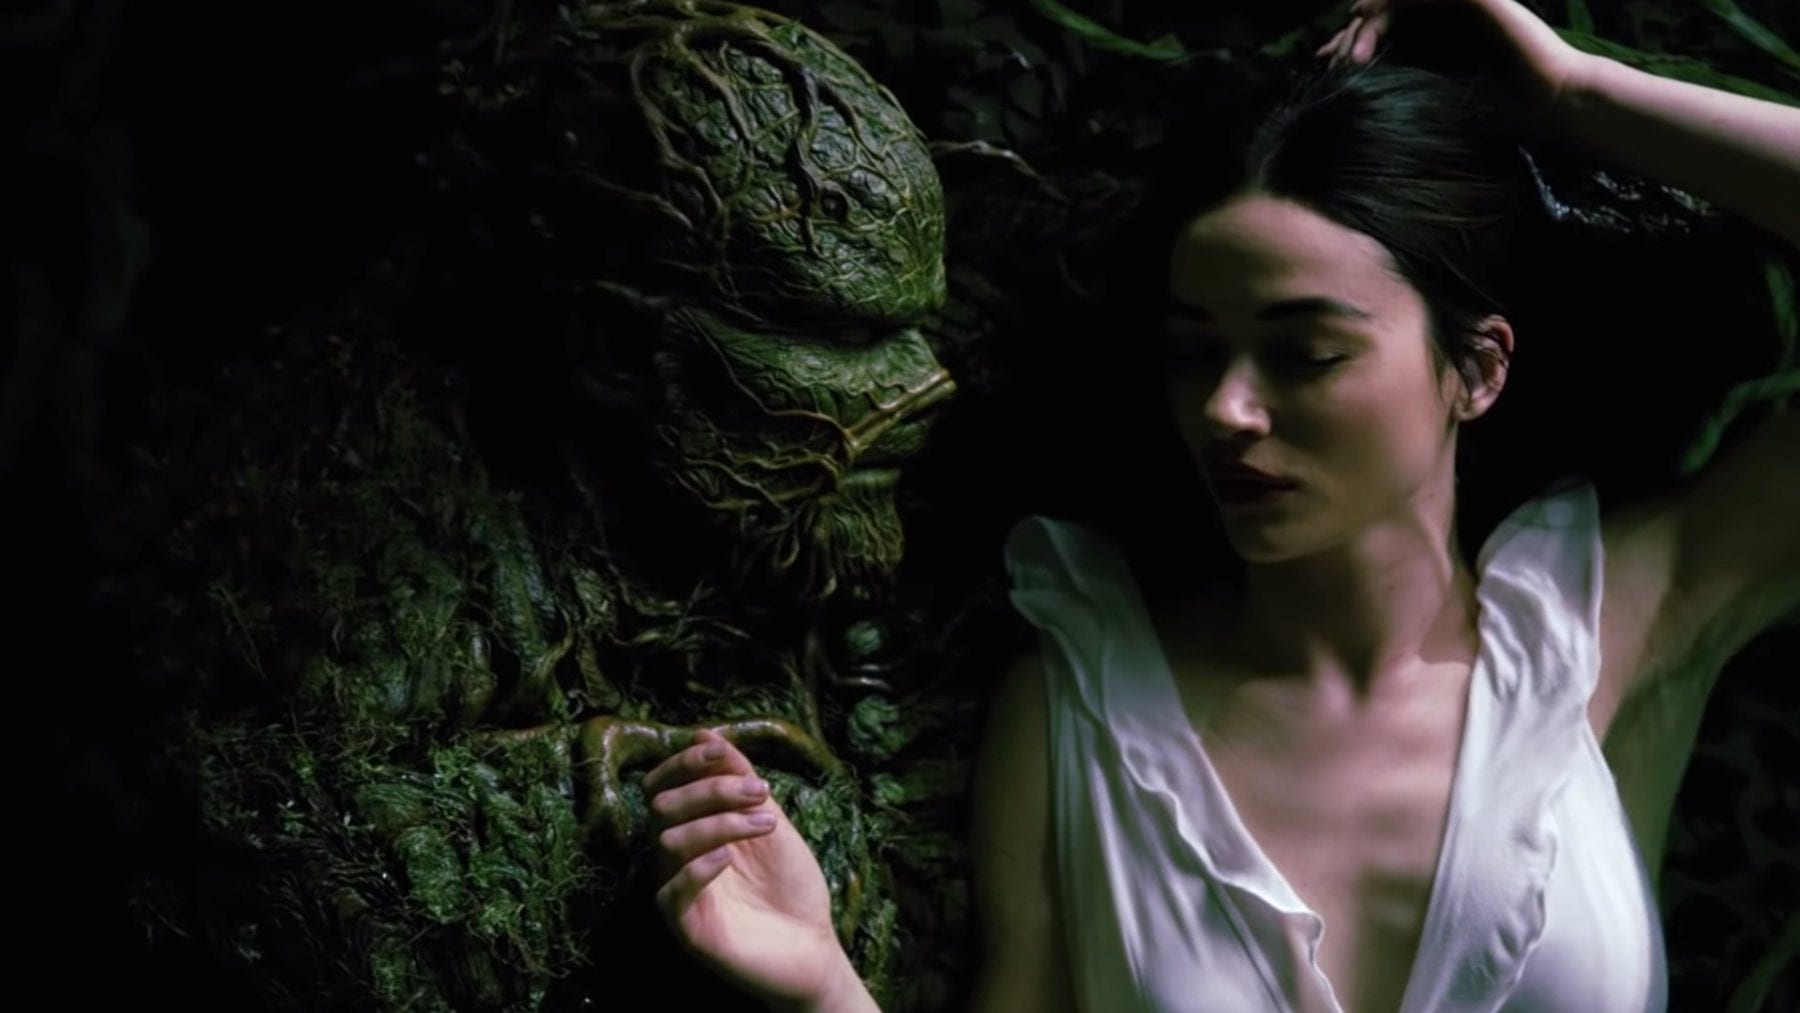 Dr. Abby Arcane (Crystal Reed) and what was once Alec Hollan (Derek Mears) embrace in a promo for DCUniverse's Swamp Thing.